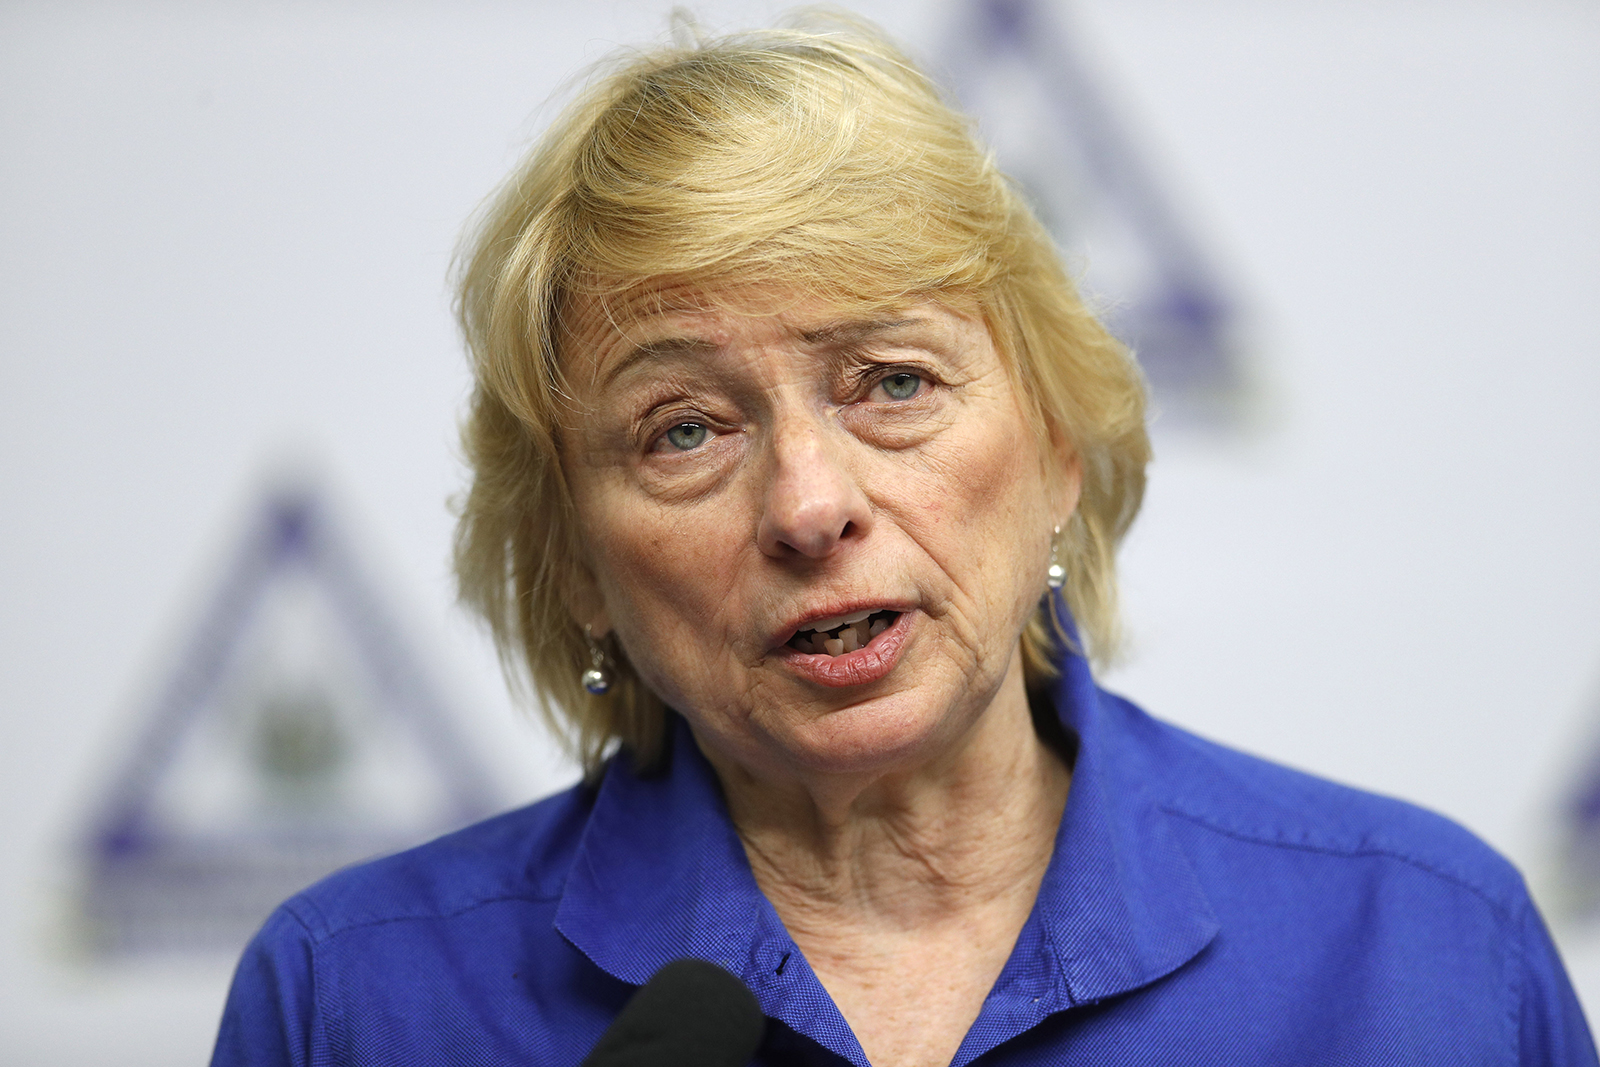 Maine Gov. Janet Mills speaks at a news conference where she announced new plans for the stay-at-home order and other measures to help combat the coronavirus pandemic, on Tuesday, April 28, in Augusta, Maine.